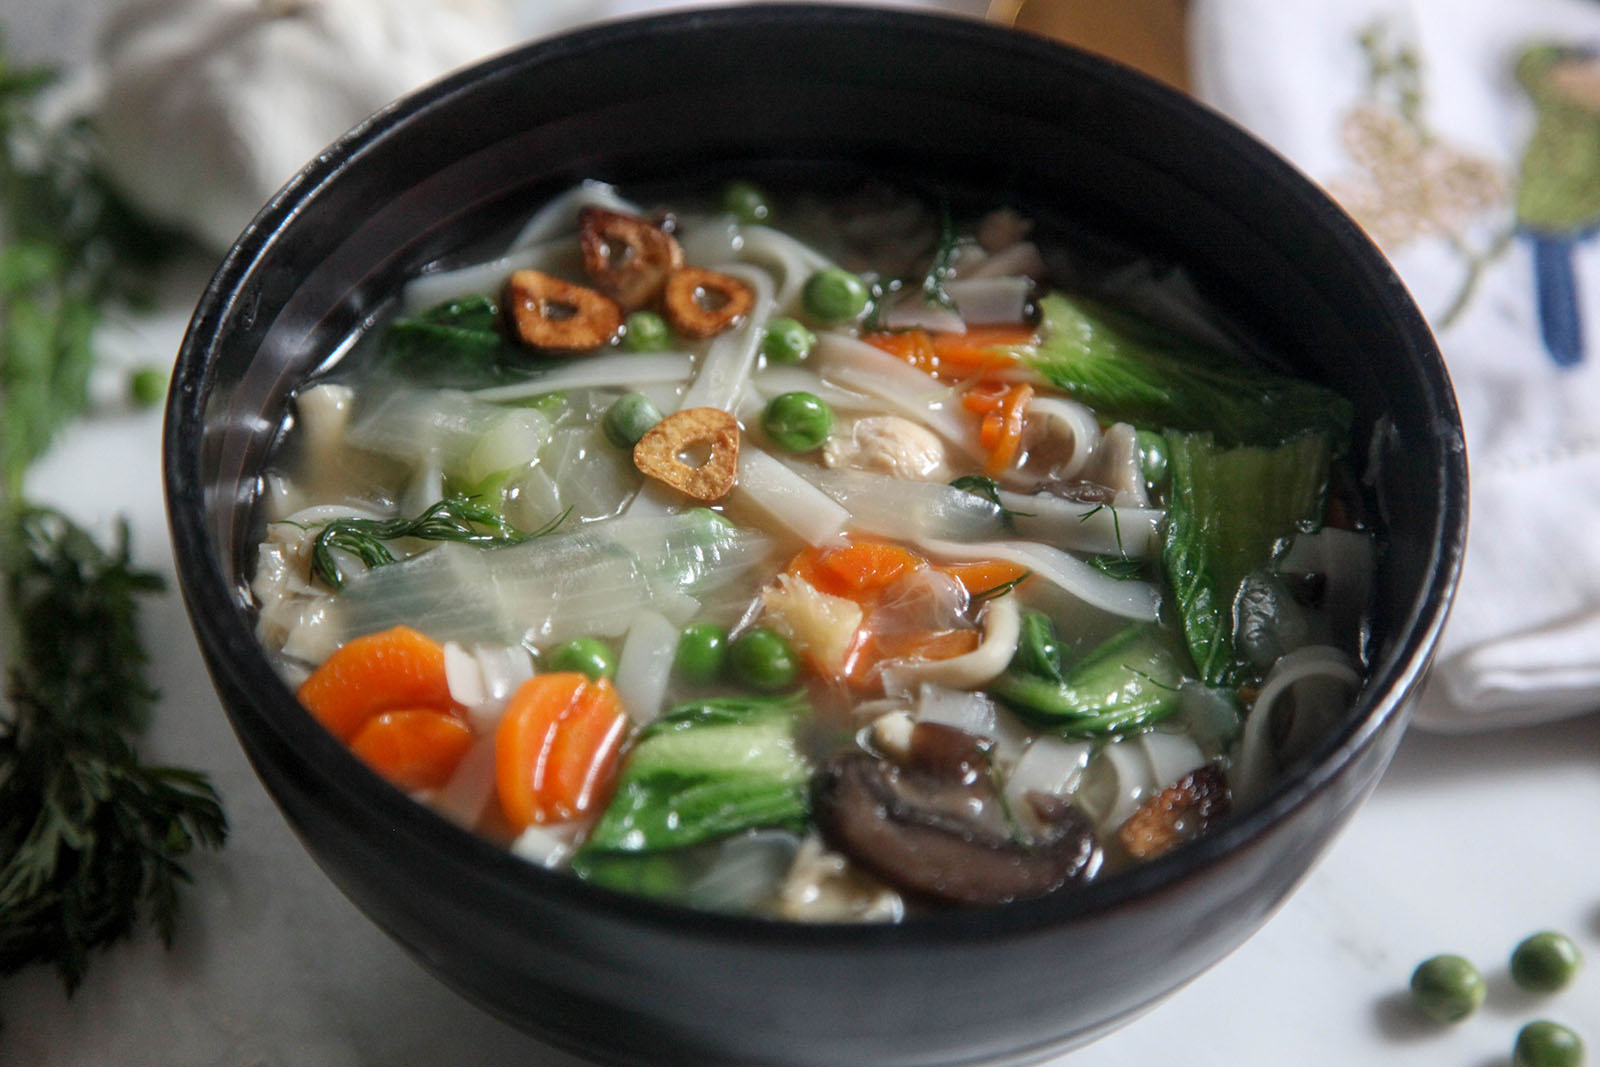 Easy Nutritious Chicken Vegetable Soup with Noodles in Bone Broth. Have it to treat covid-19 at home.